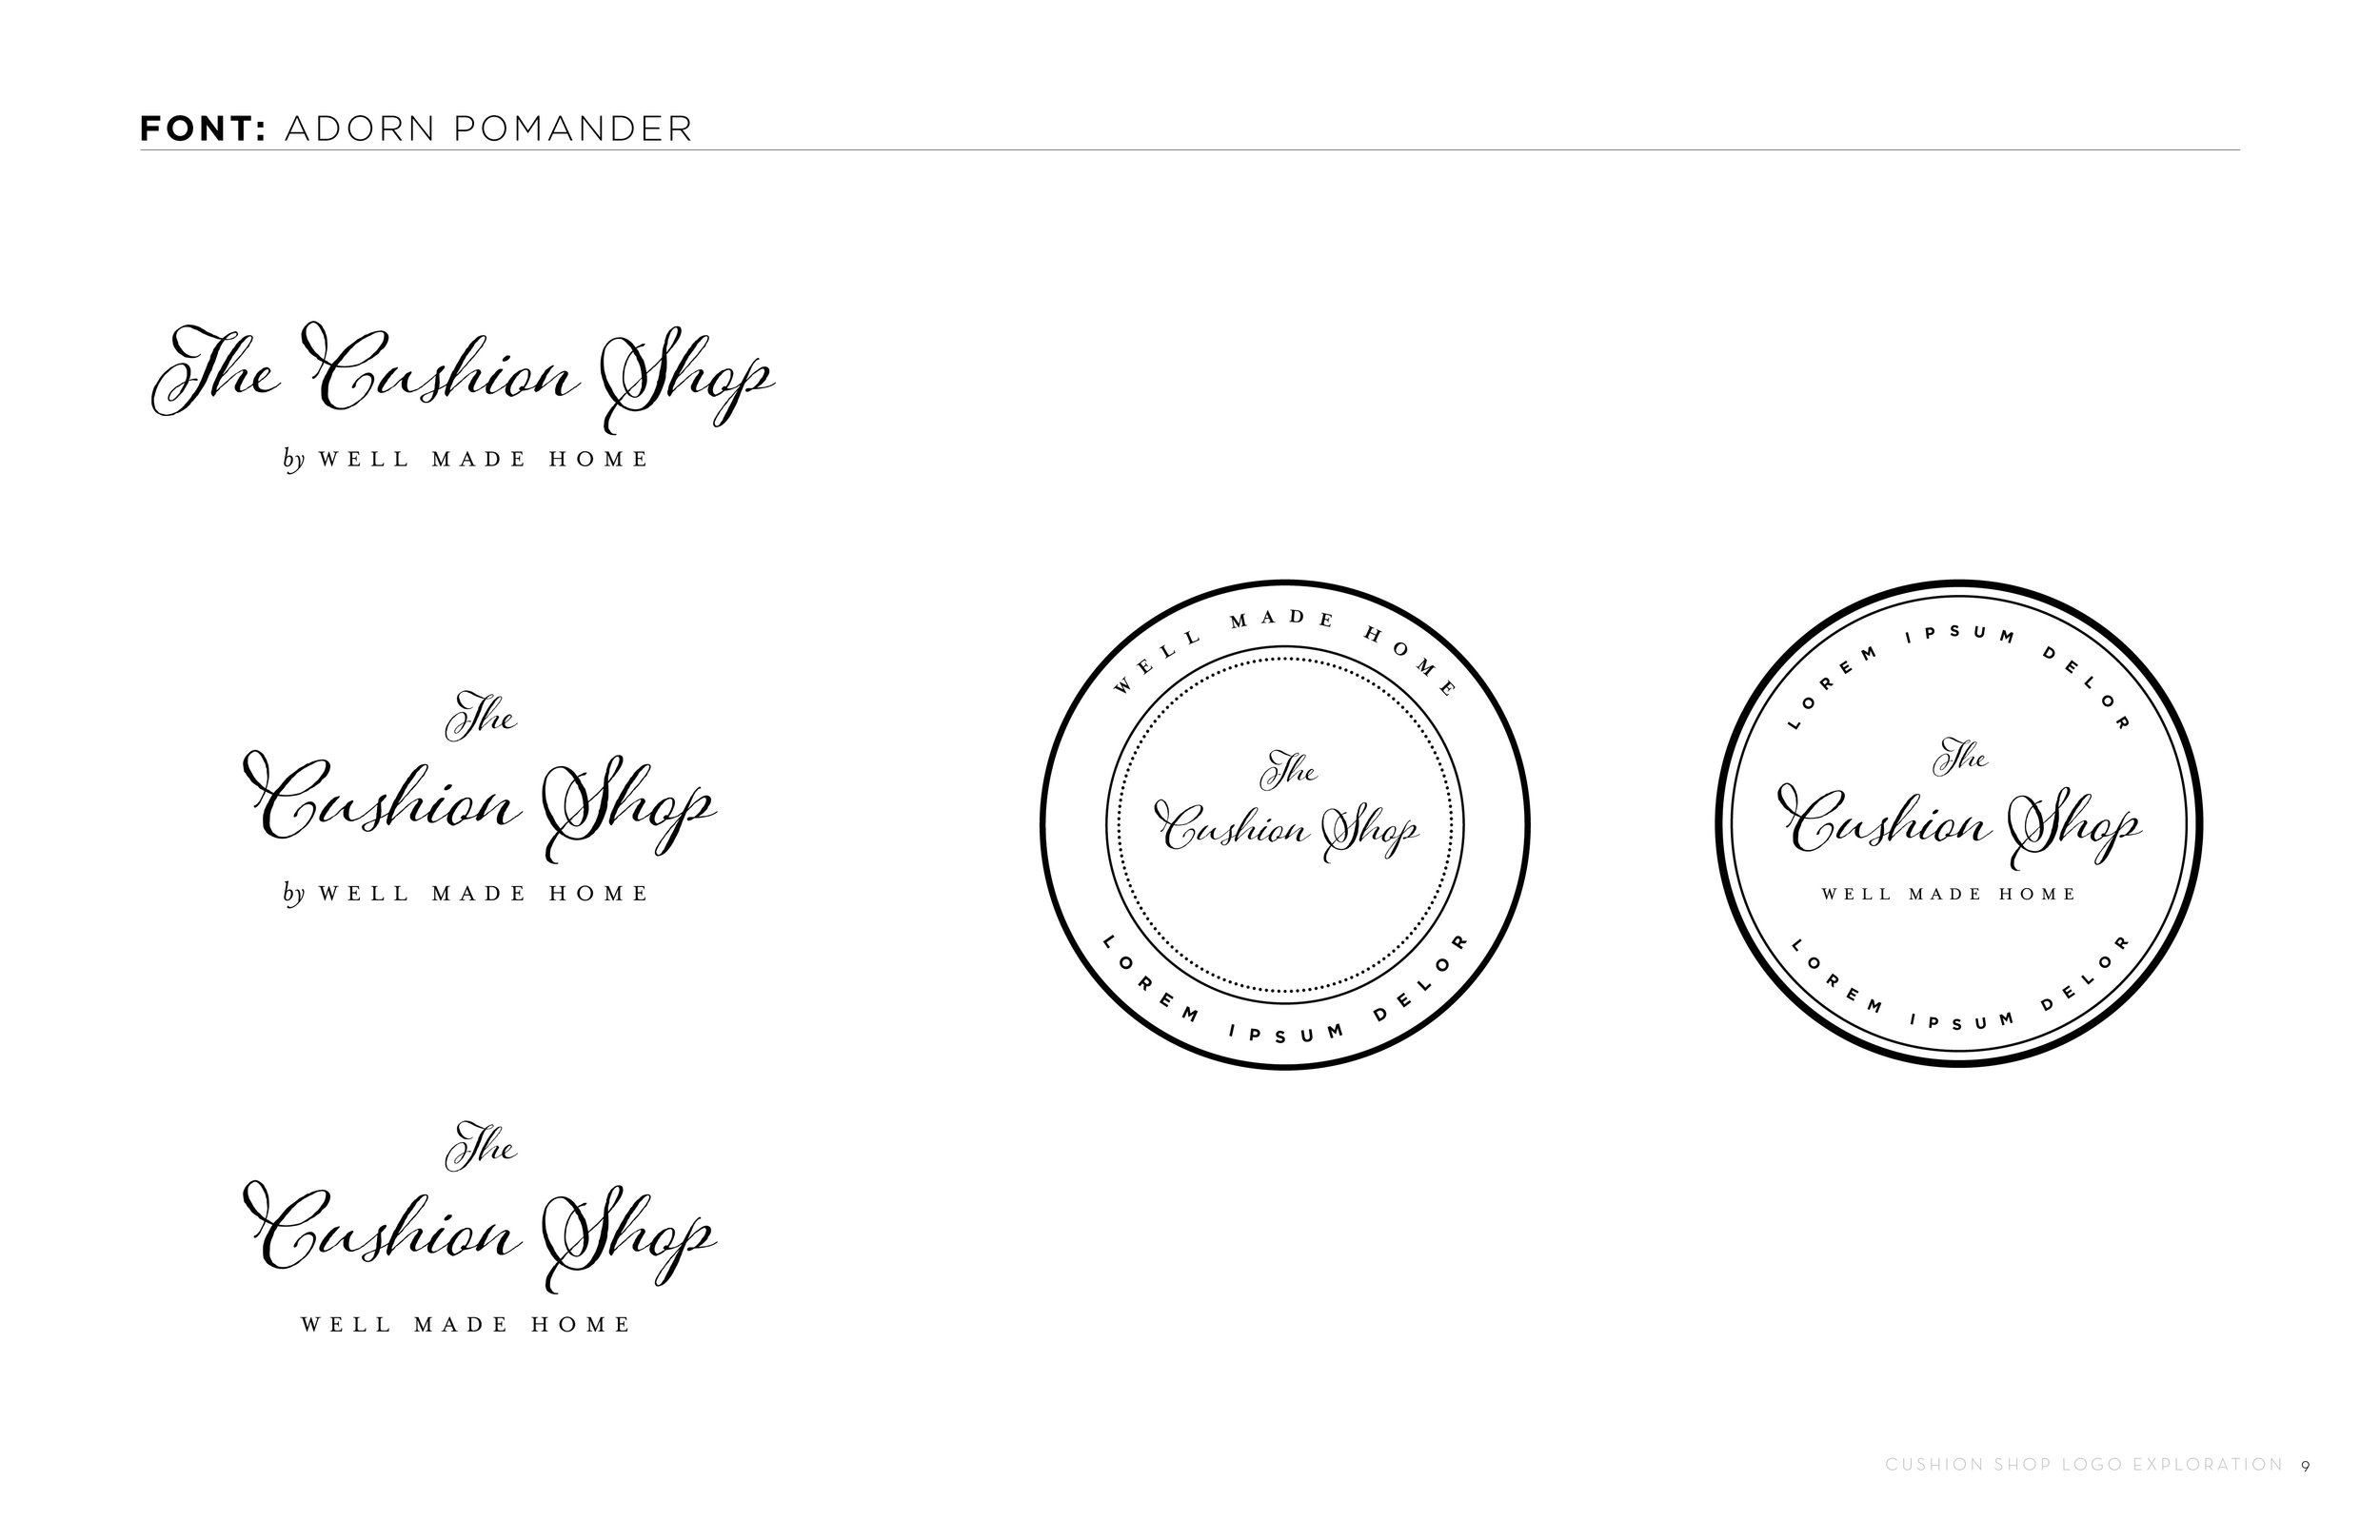 Cushion Shop_Logo Concepts_R10_9.jpg